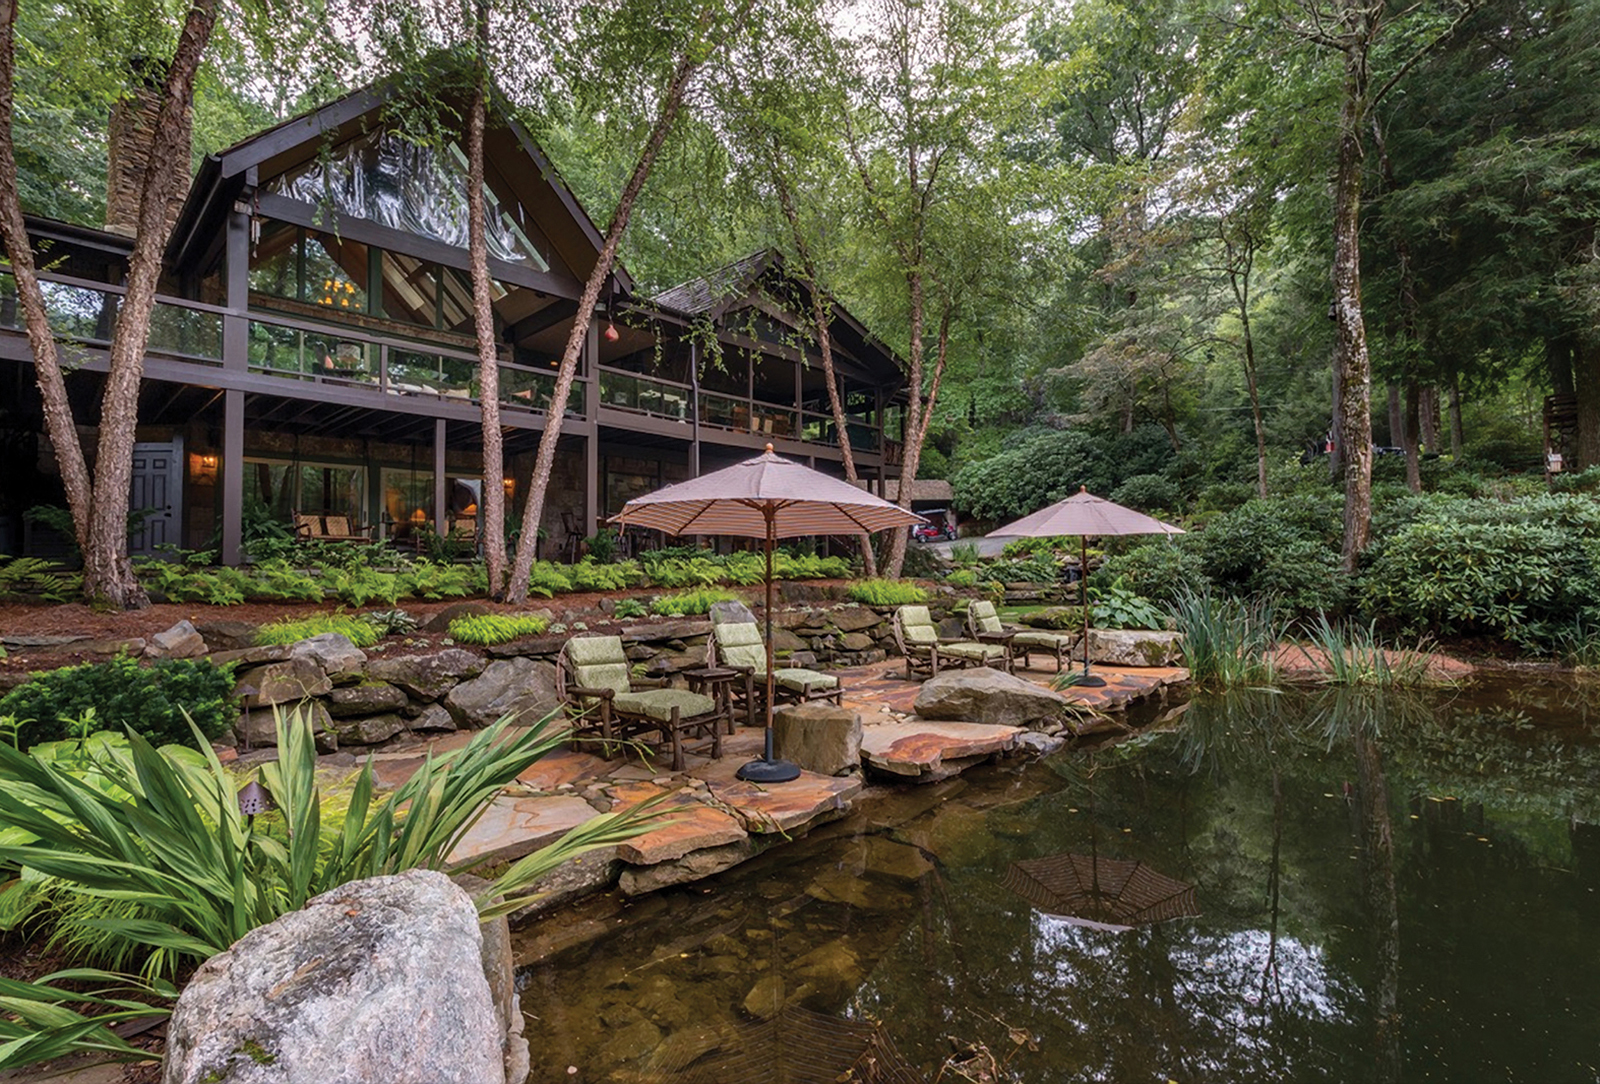 Home for Sale in Sapphire Valley, NC - Exterior